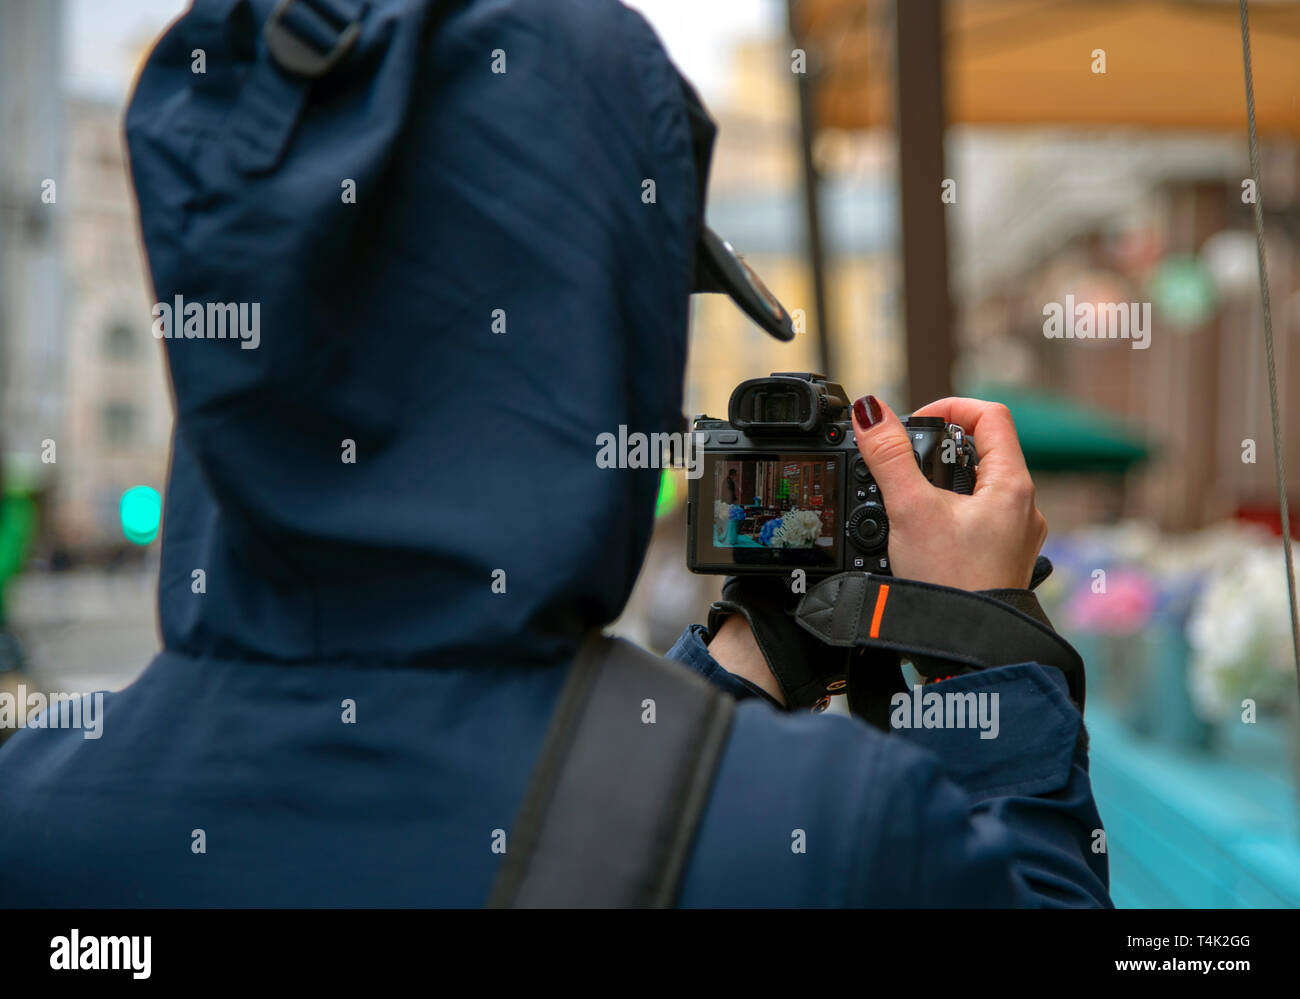 Girl-photographer takes photos of veranda outdoor cafe on the streets of the city.The photo was taken from the back, on the camera screen you can see - Stock Image